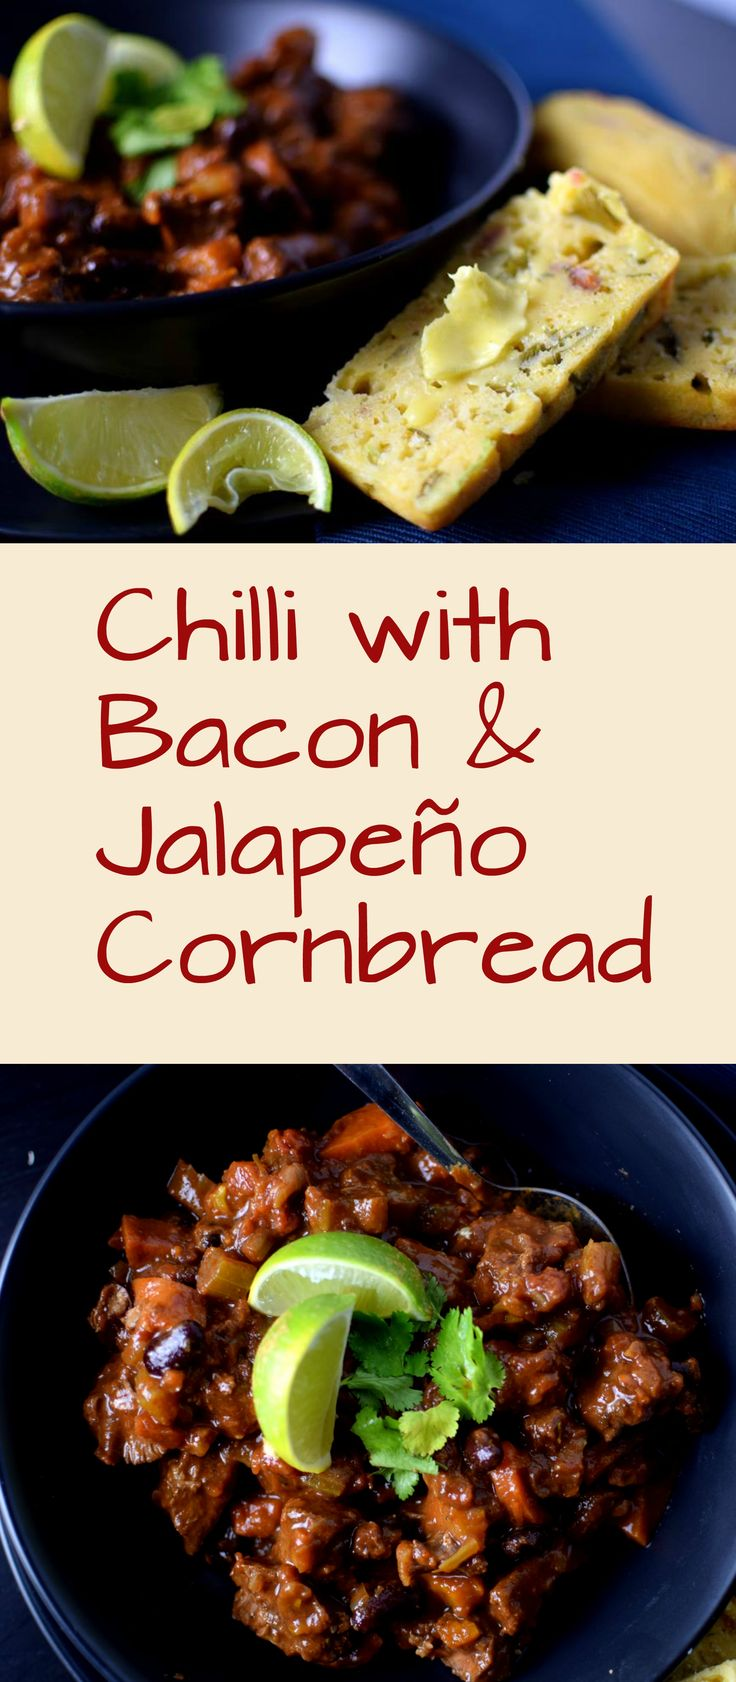 Rich hearty chilli with irresistible bacon and jalapeno cornbread, perfect for those cooler nights.